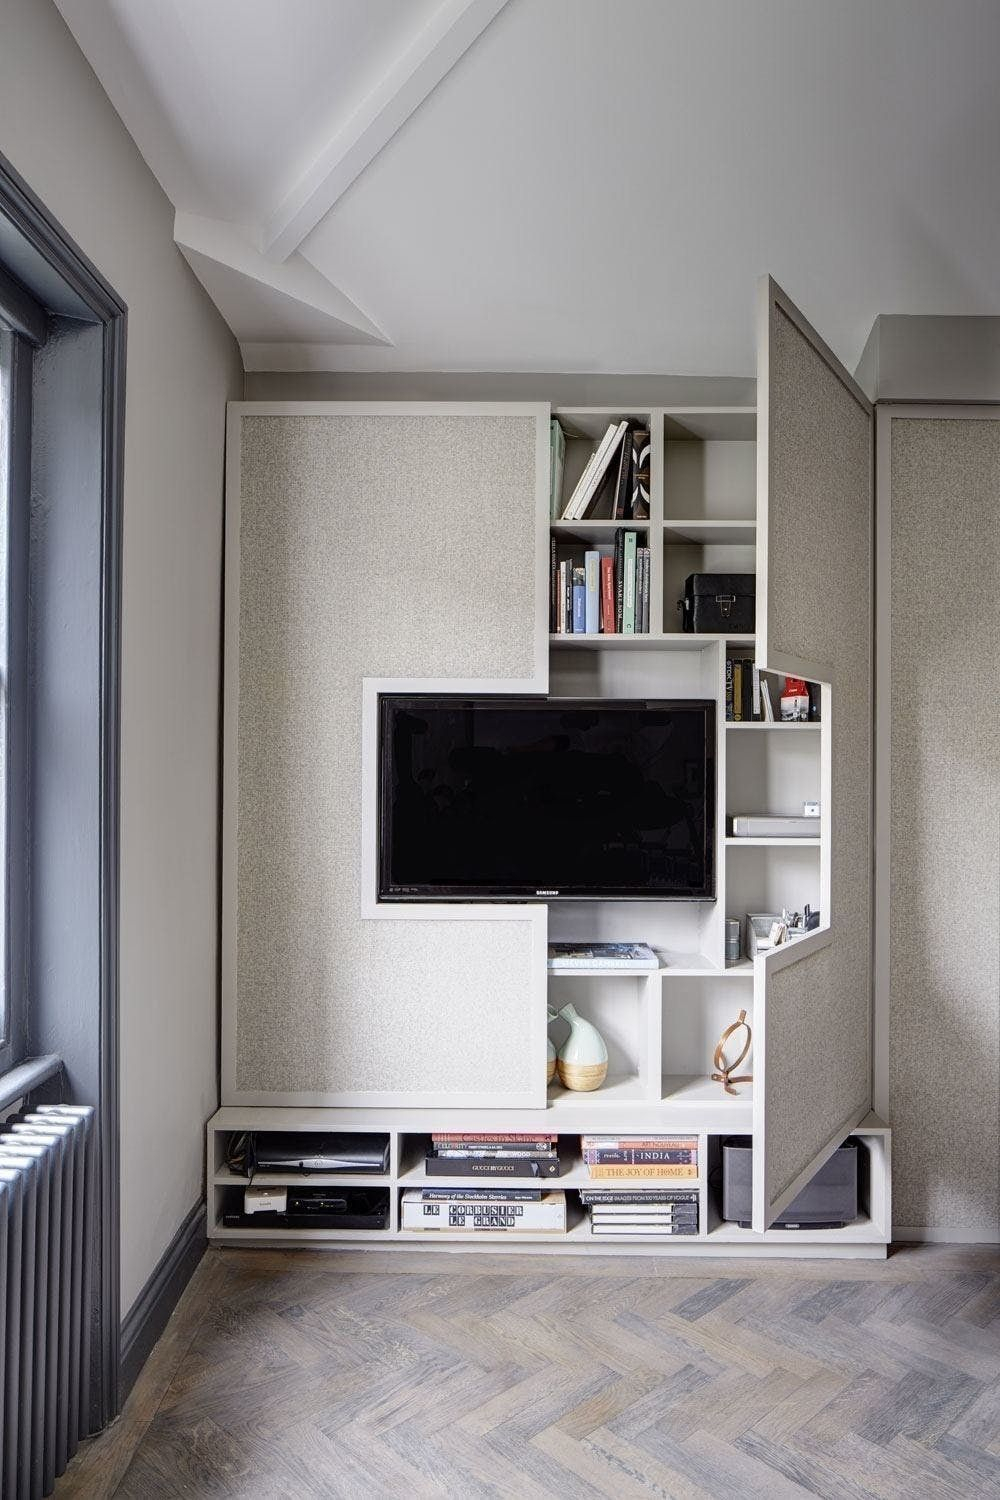 14 Hidden Storage Ideas For Small Spaces – Brit + Co | Tv Stand Diy Inside Bale Rustic Grey 82 Inch Tv Stands (Photo 11 of 30)